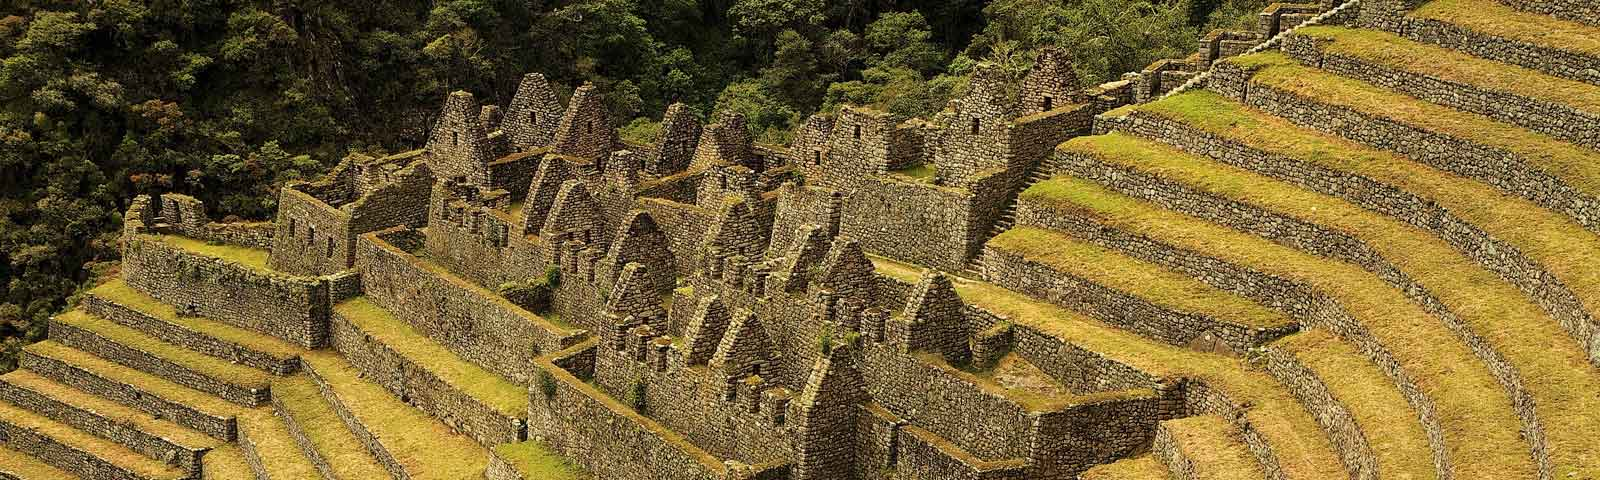 INCA TRAIL TO MACHU PICCHU in 02 DAYS / 01 NIGHT